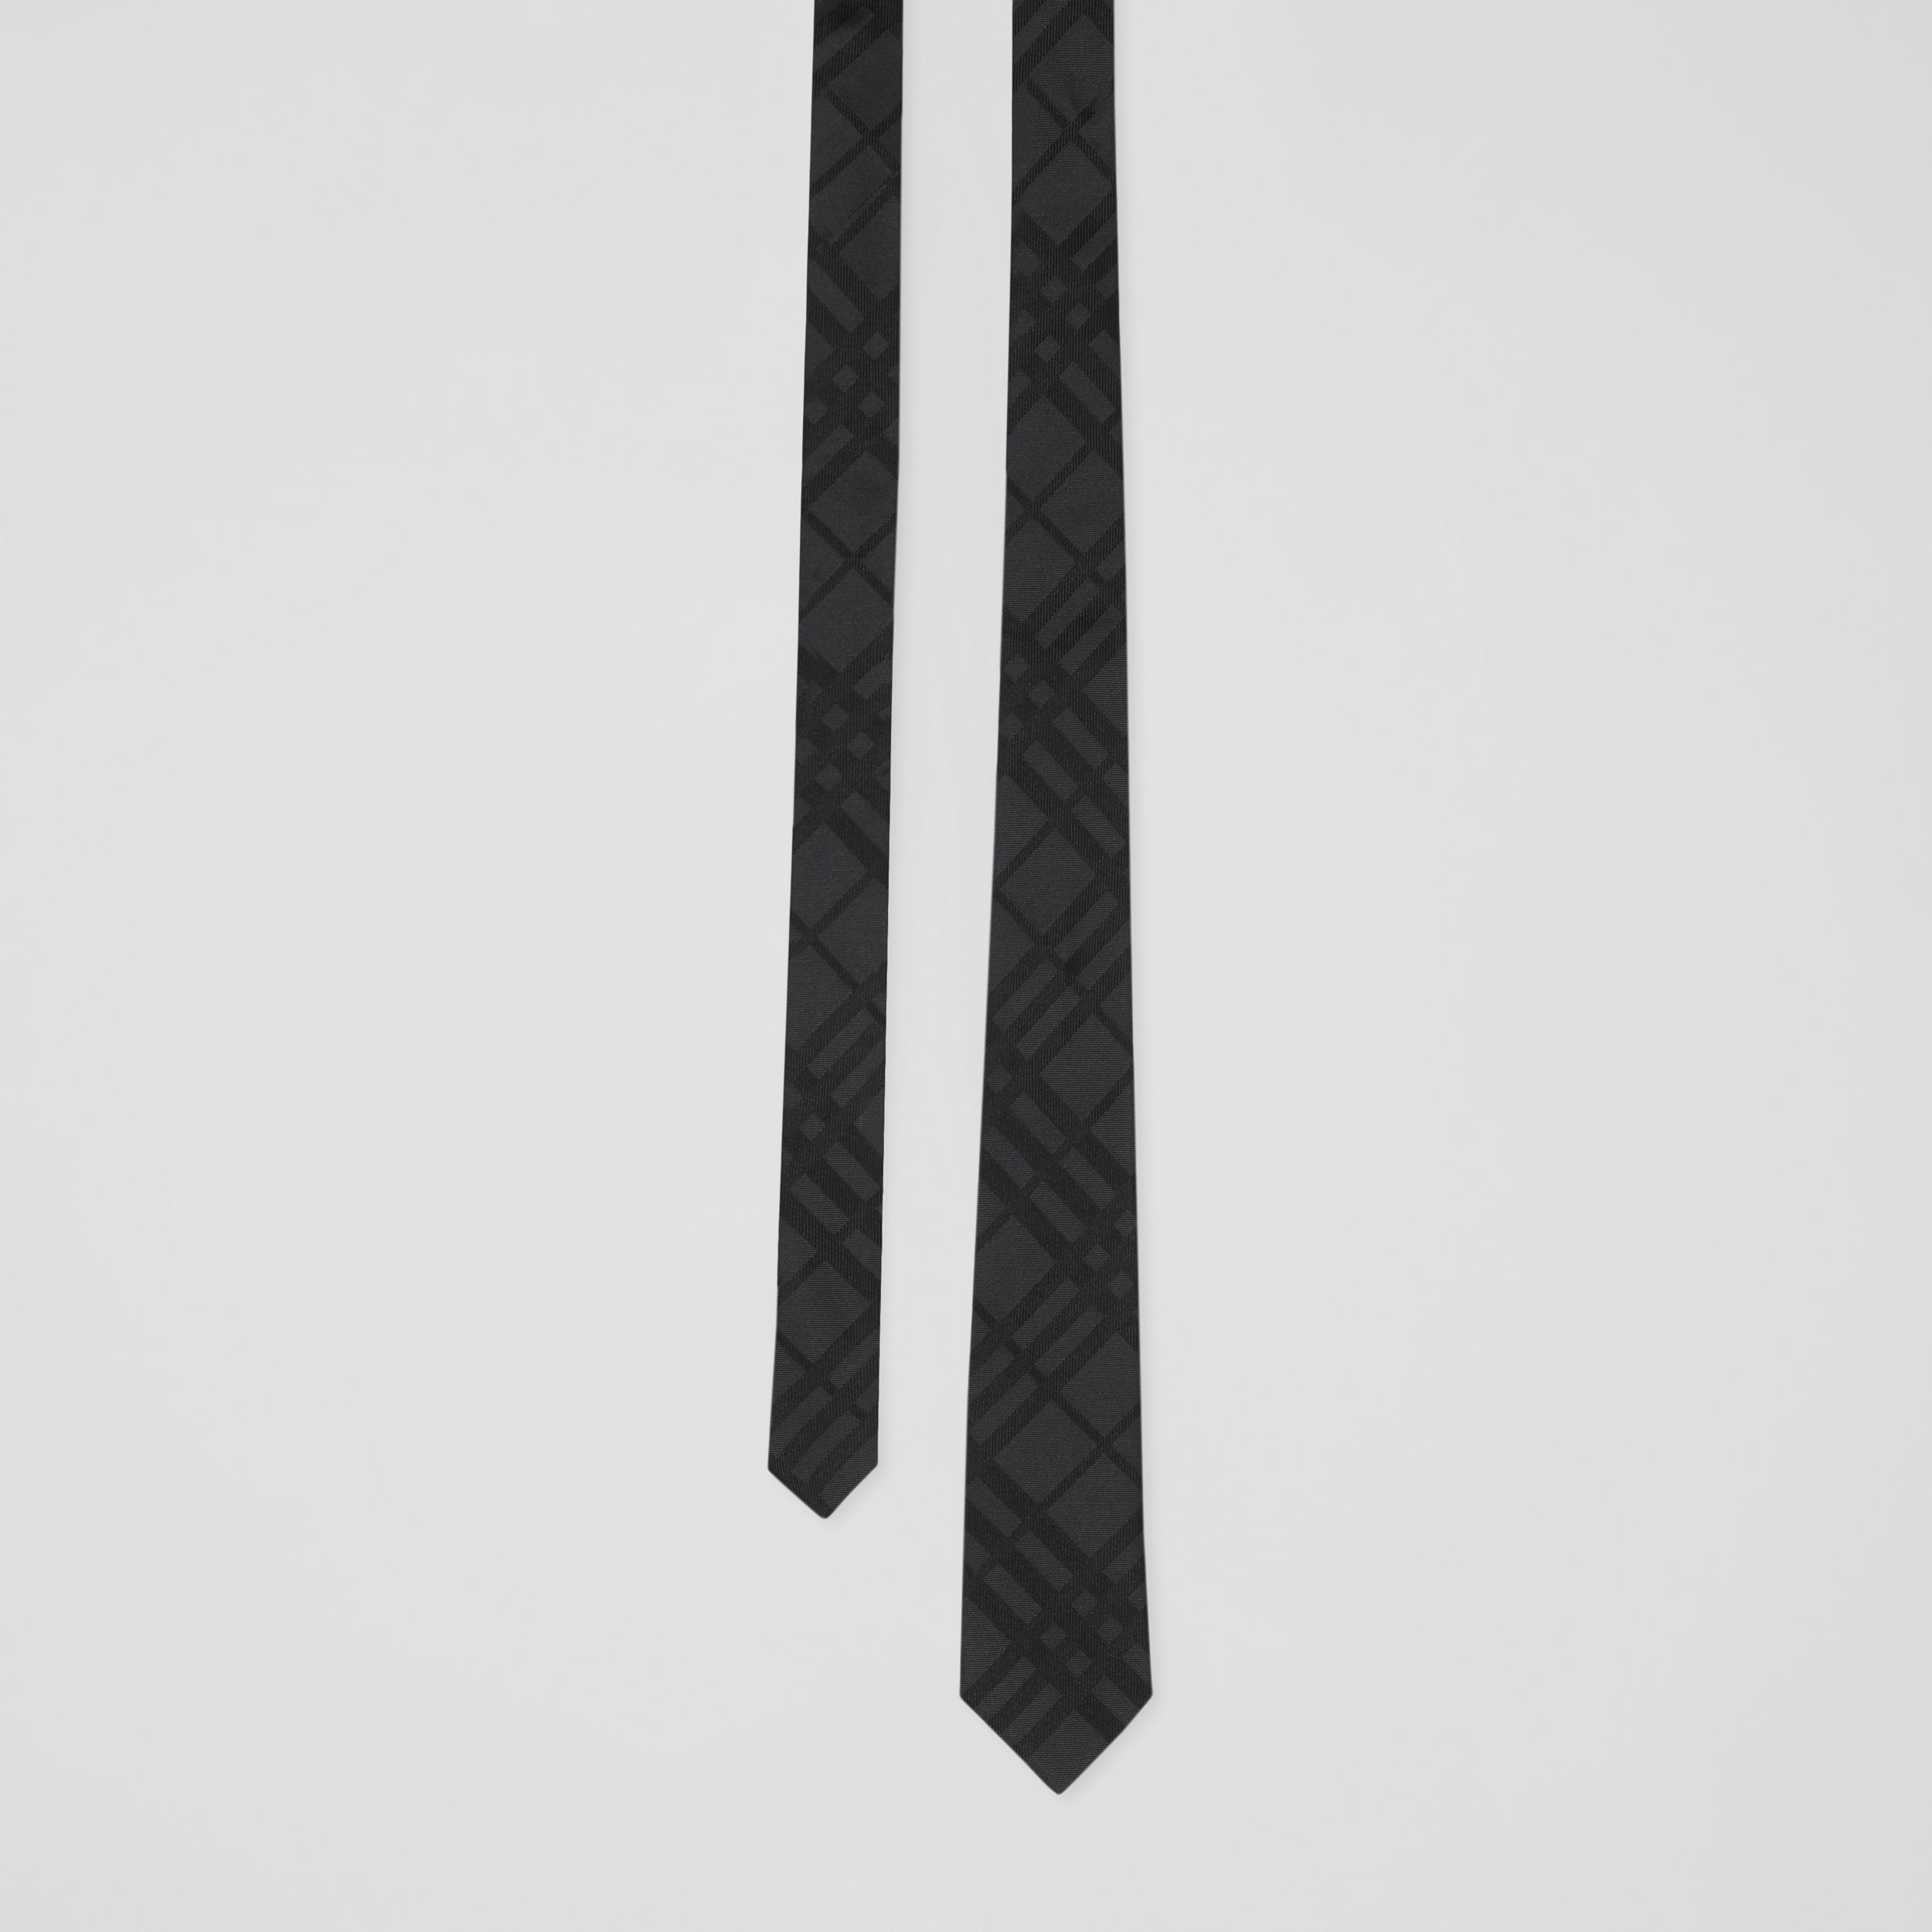 Classic Cut Check Silk Jacquard Tie in Black - Men | Burberry Australia - 1